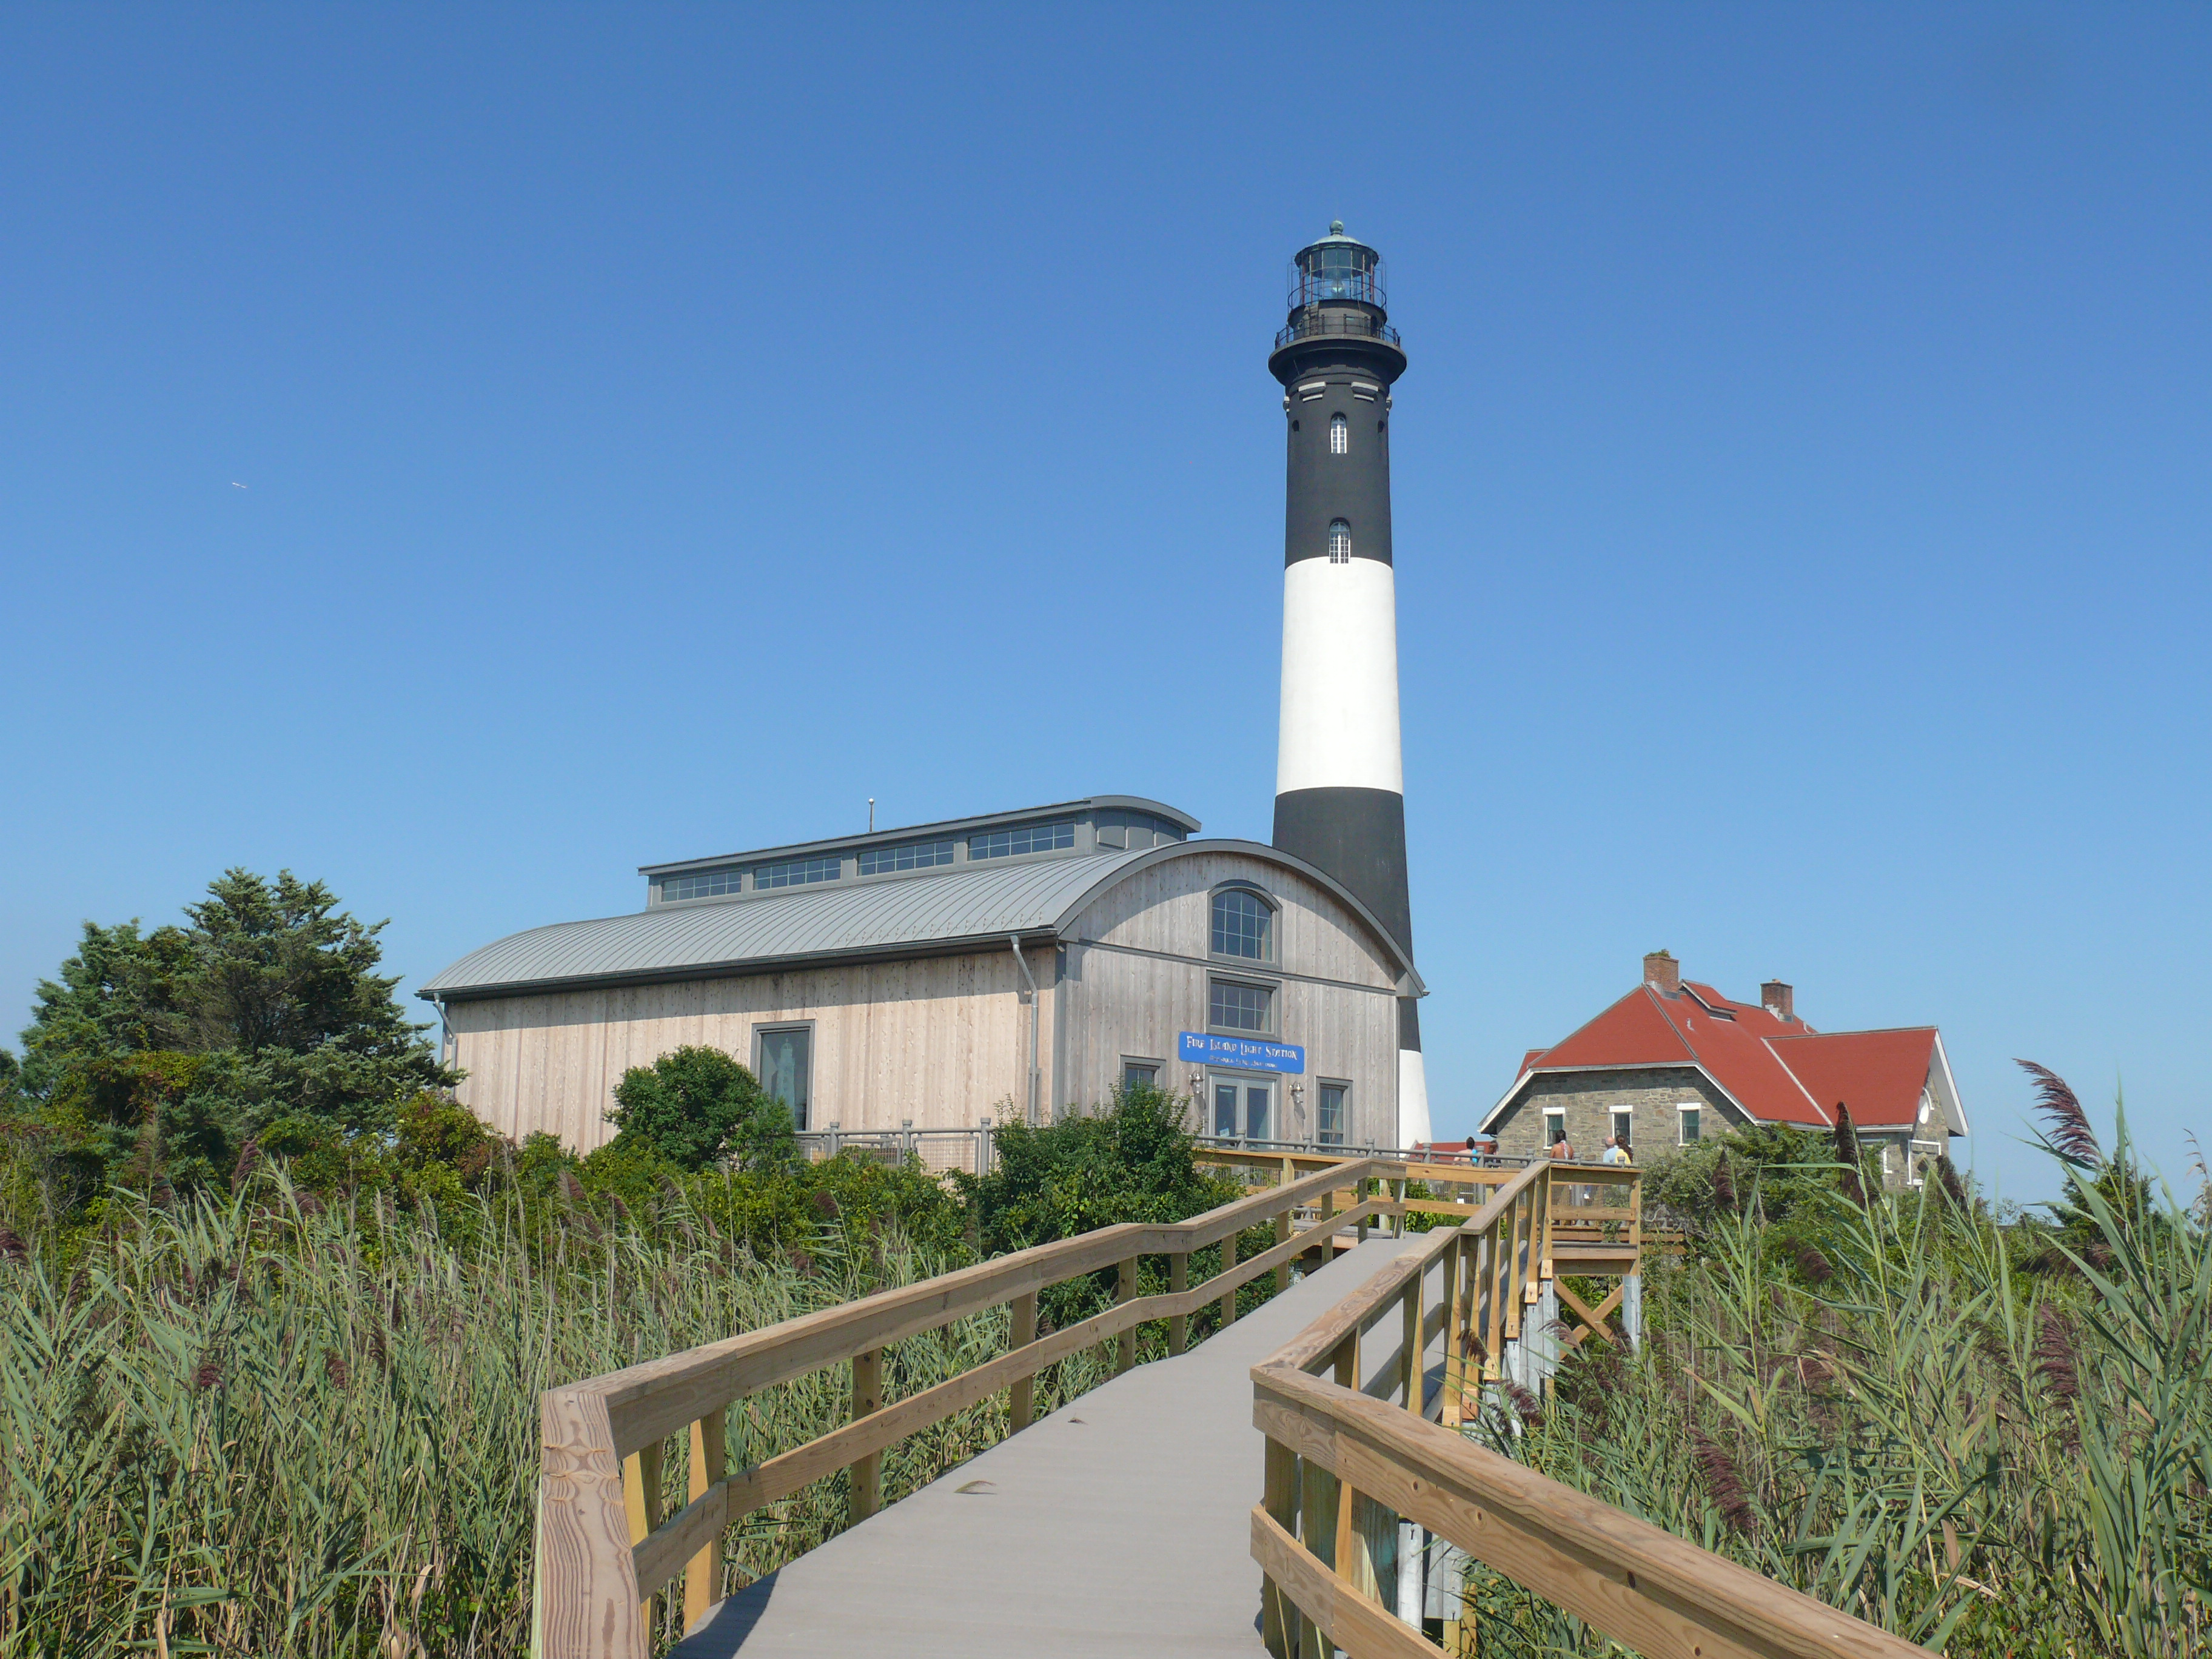 View of Fire Island Lighthouse Fresnel Lens Building from boardwalk